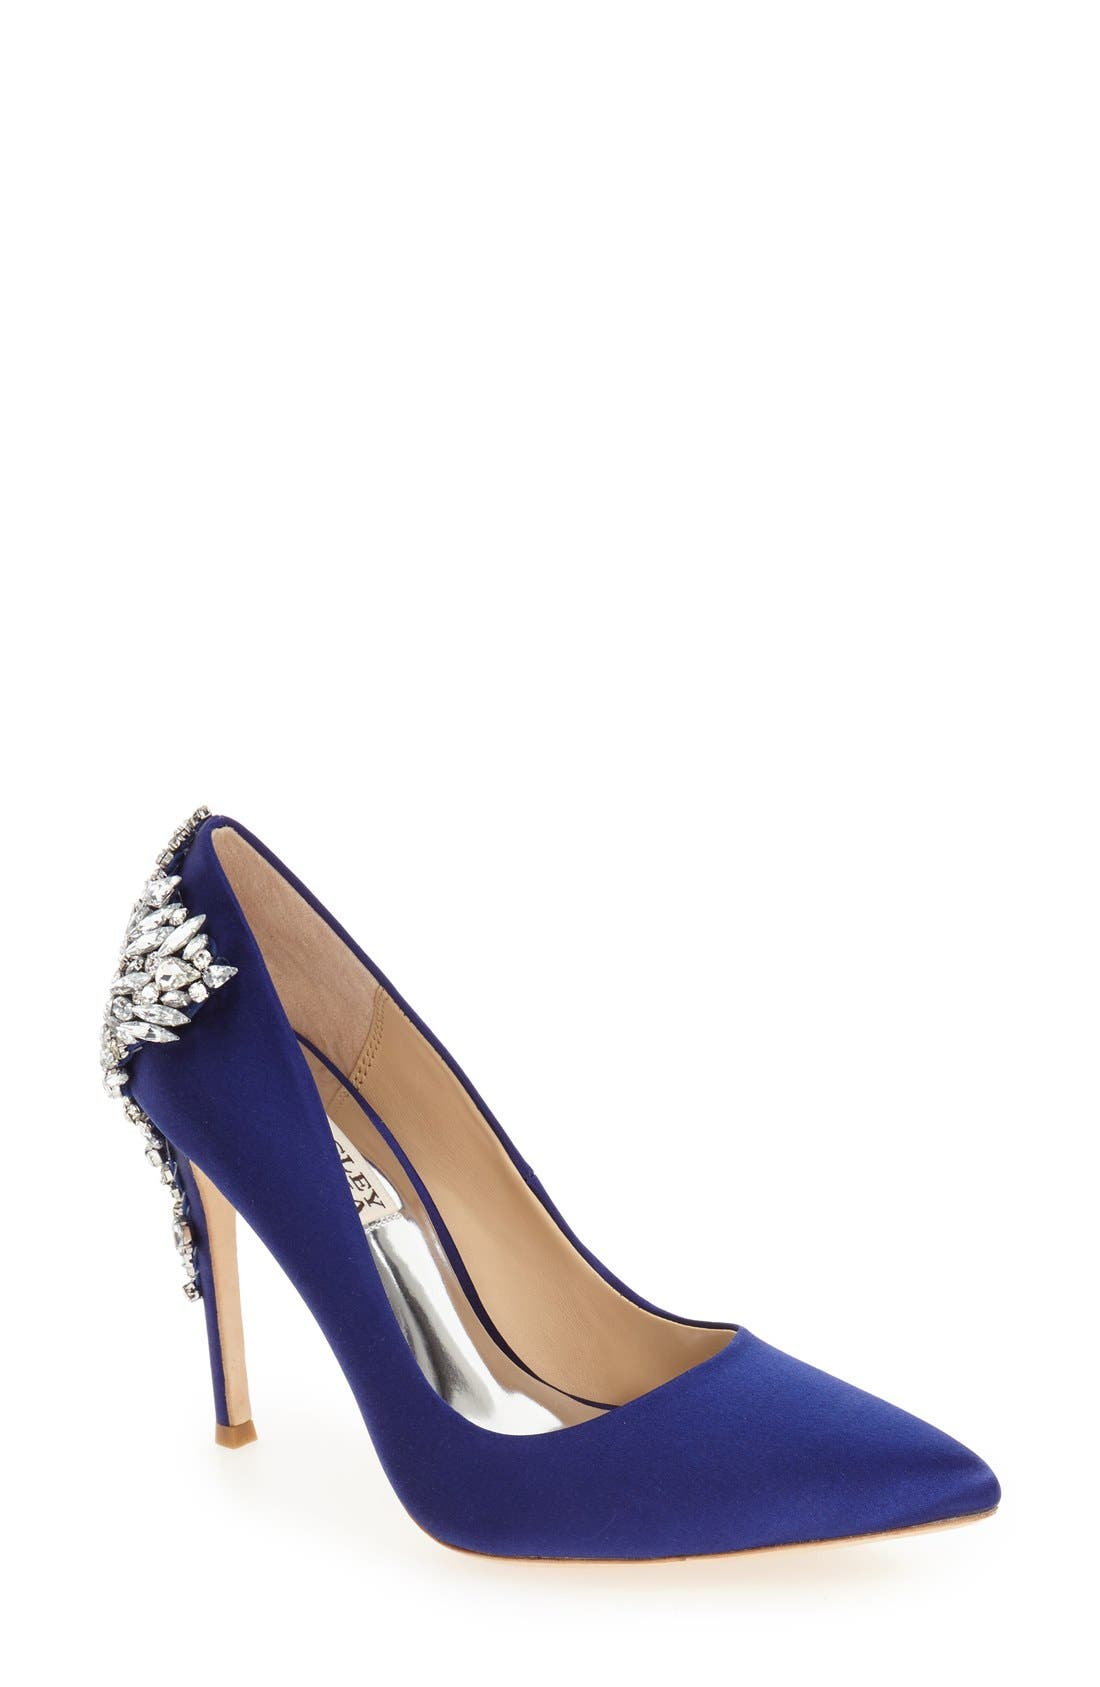 Main Image - Badgley Mischka 'Gorgeous' Crystal Embellished Pointy Toe Pump (Women)